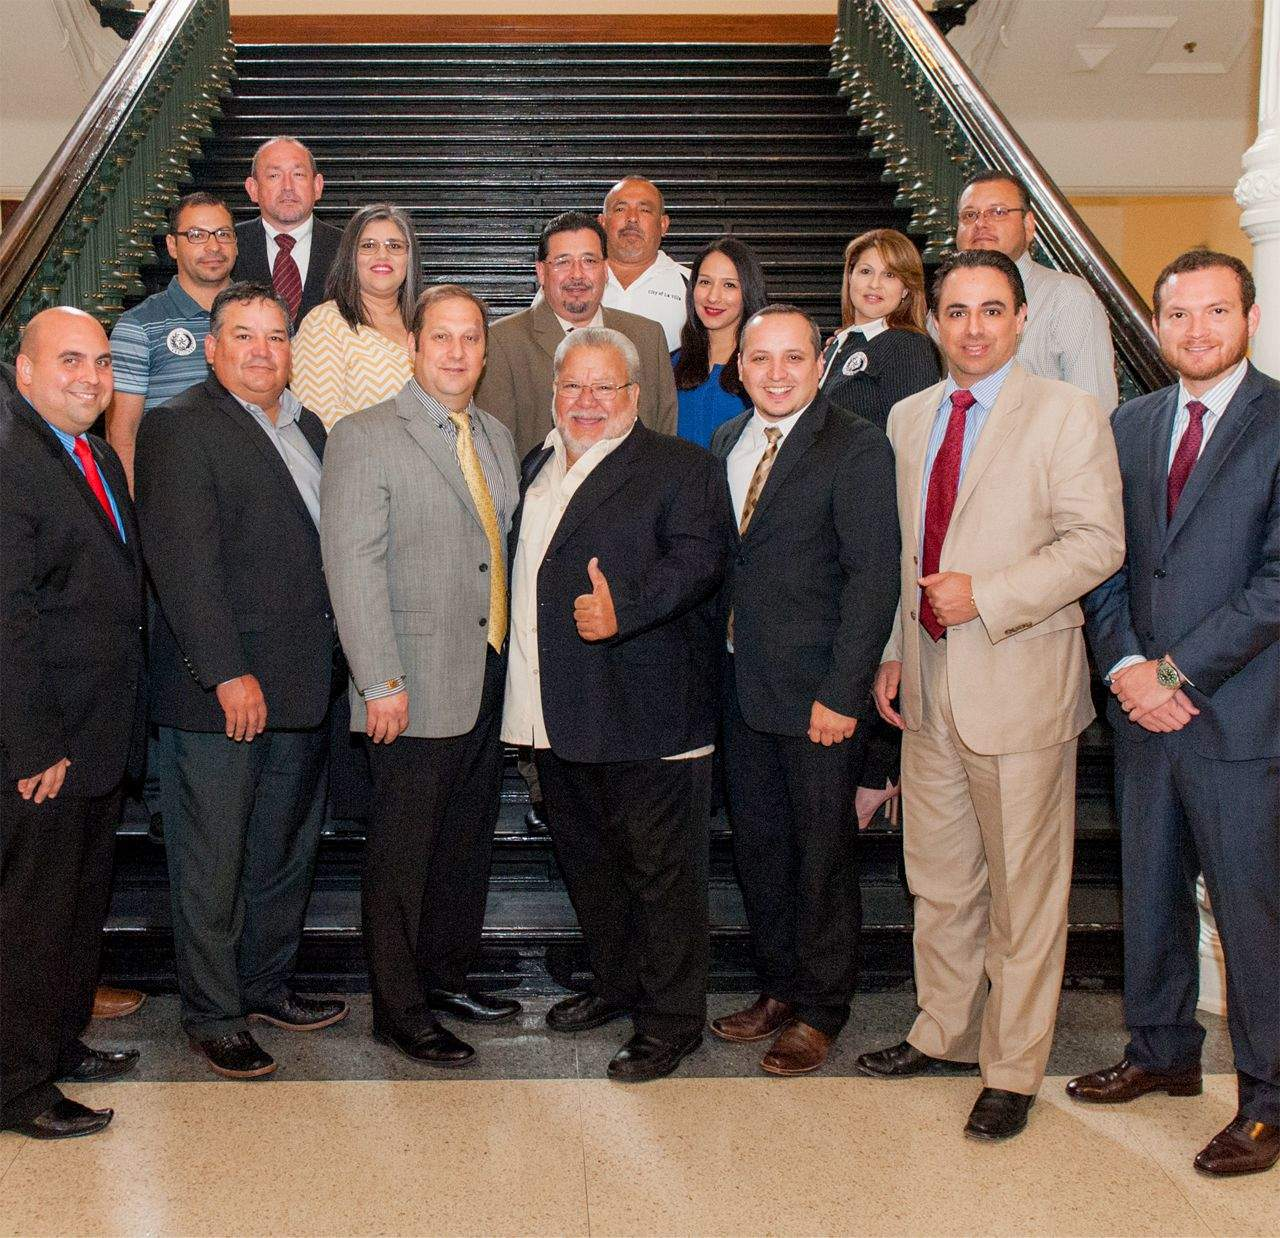 "Featured, front row, from left: Rep. Armando ""Mando"" Martínez, D-Weslaco; Elsa Mayor Al Pérez; Edcouch-Elsa ISD School Board Trustee Víctor ""Hugo"" De la Cruz; Edcouch Mayor Pro Tem Eddy González; Edcouch Mayor Robert Schmalzried; Rep. Terry Canales, D-Edinburg; and Rep. Óscar Longoria, Jr., D-La Joya. Middle row, from left: La Villa City Manager Arnie Amaro; Edcouch Alderwoman Verónica Solis; Edcouch City Manager Noé Cavazos; Edcouch Alderwoman Rina Castillo; La Villa Commissioner Rosie Pérez; and Edcouch Alderman Danny Guzmán. Back row, from left: Elsa City Manager Juan Zuniga; and La Villa Commissioner Mario López. The lawmakers and constituents posed for this portrait inside the Texas Capitol following House passage on Friday, May 8, of House Bill 382, which proposed creating a South Texas College branch campus in the Delta Region of Hidalgo County. Photograph By HOUSE PHOTOGRAPHY"